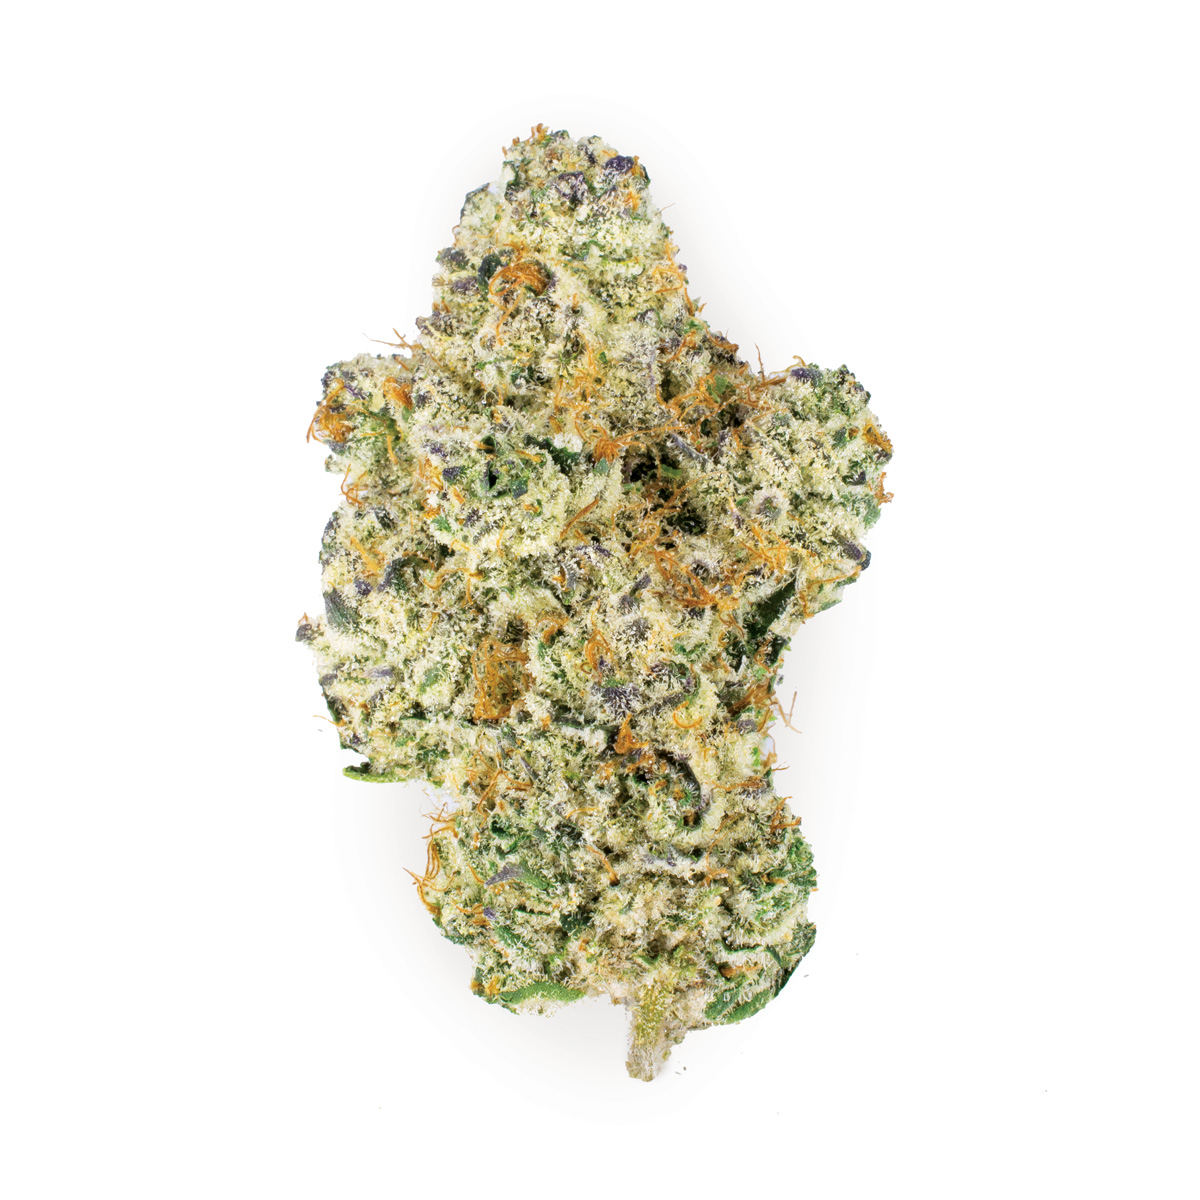 Dosi white - Indica Dominant Hybrid27.4% THC | .1 % CBDA cross between Dosi Dos and The White, Ember Valley's Dosi White is teeming with trichome density and a scent dominated by earthiness with slight notes of gas and fruit. The cosmic high that Dosi White invokes is perfect for relaxed creativity, and as a result it's become a staple strain in our farms.